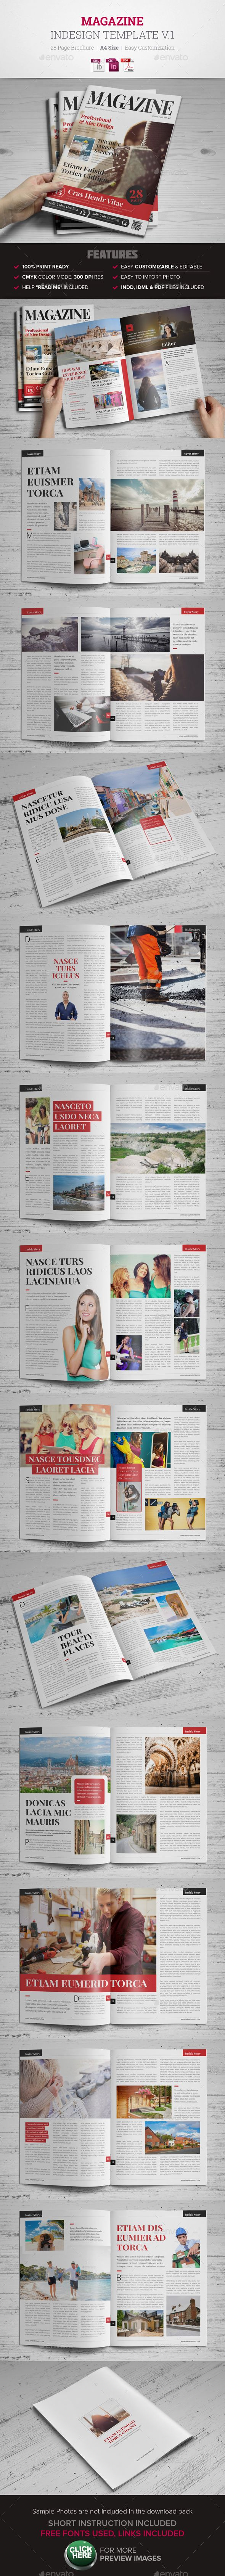 Magazine InDesign Template v1  #product magazine #elegant magazine #professional magazine • Click here to download ! http://graphicriver.net/item/magazine-indesign-template-v1-/14247032?ref=pxcr